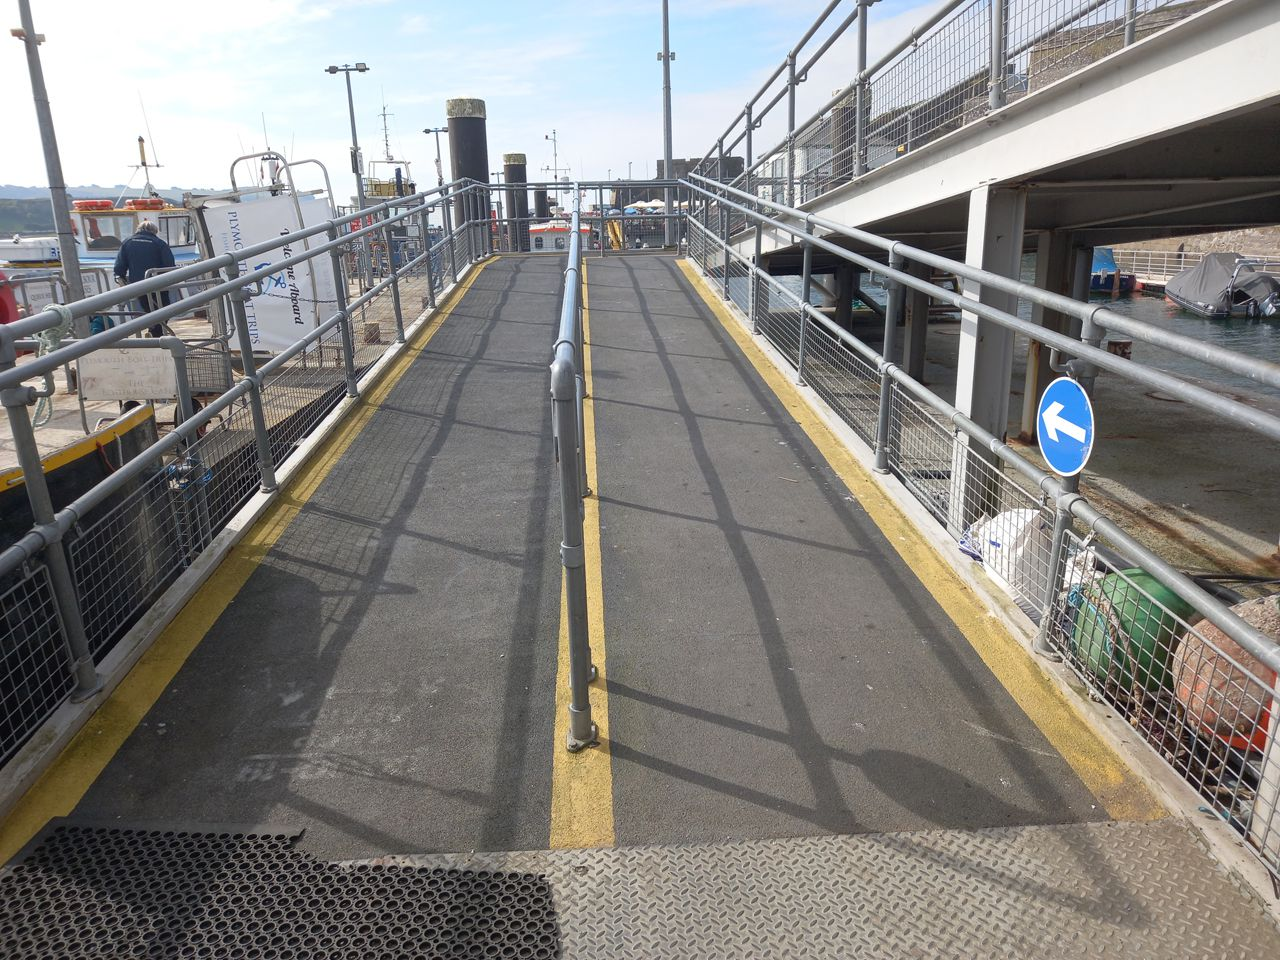 Plymouth Boat Trips Accessibility